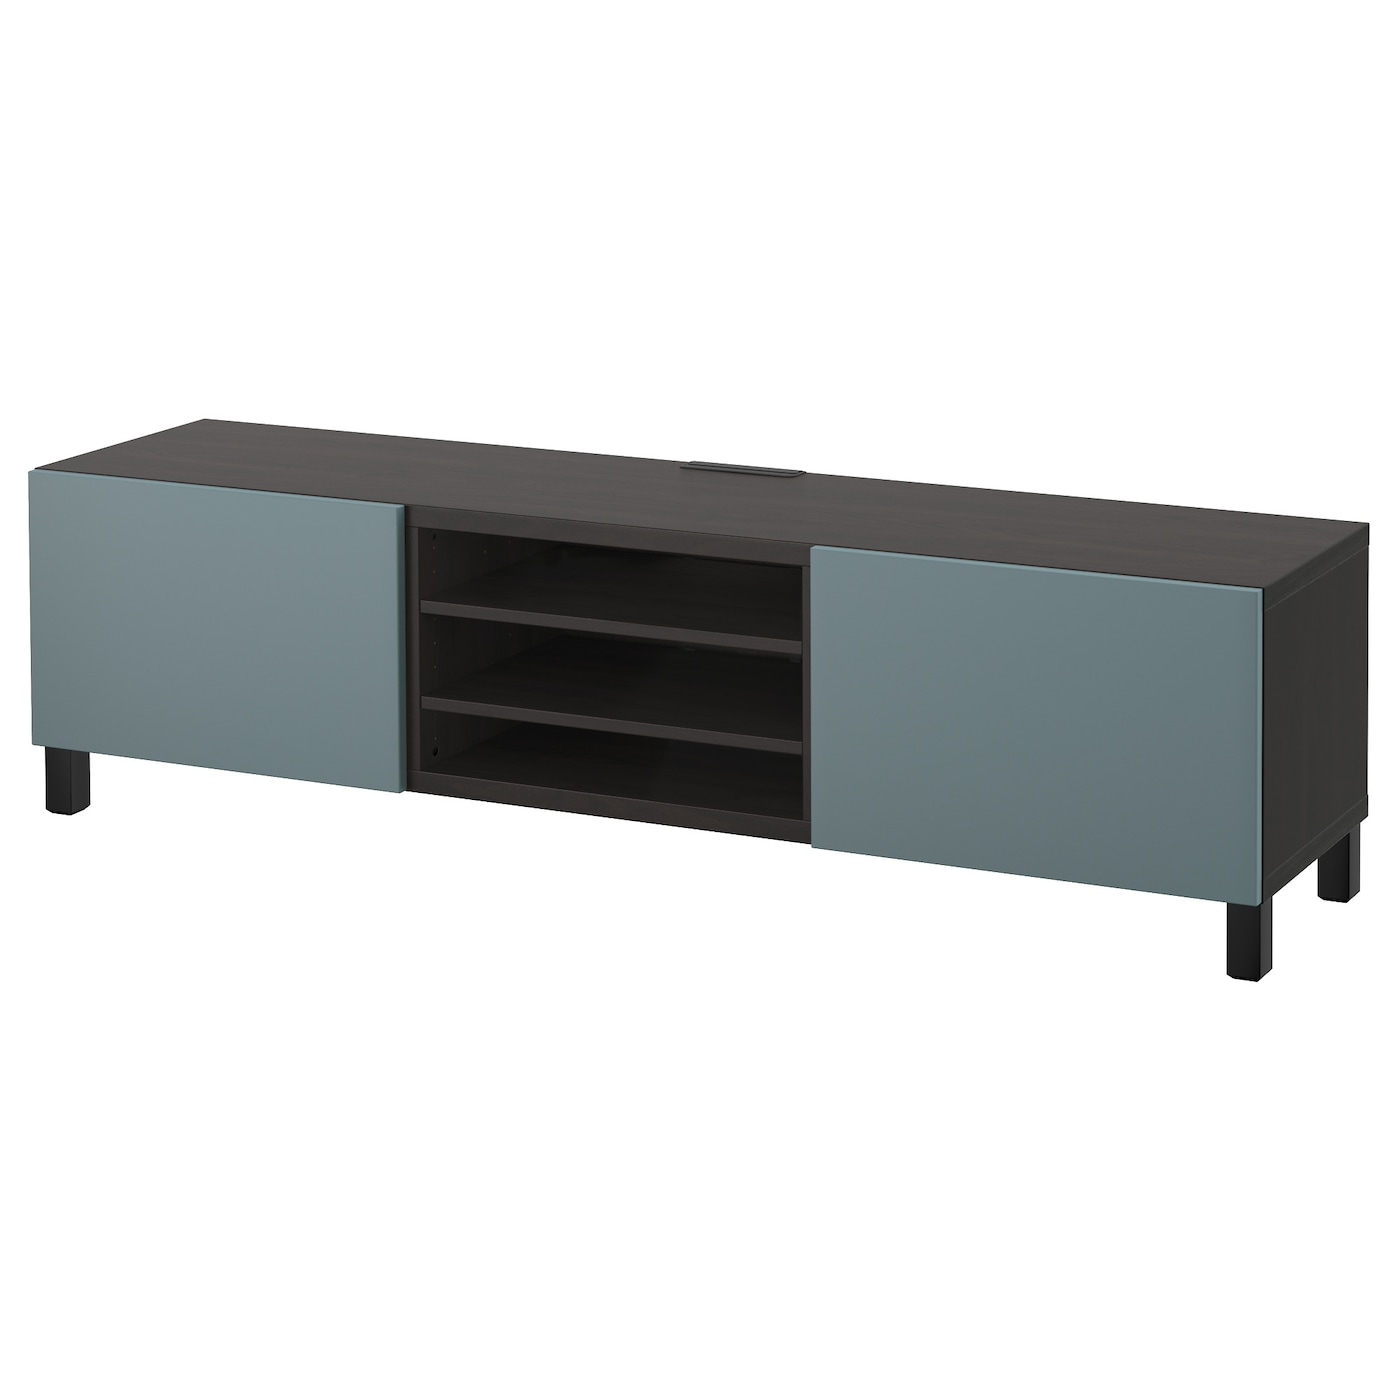 Best Tv Bench With Drawers Black Brown Valviken Grey Turquoise 180x40x48 Cm Ikea